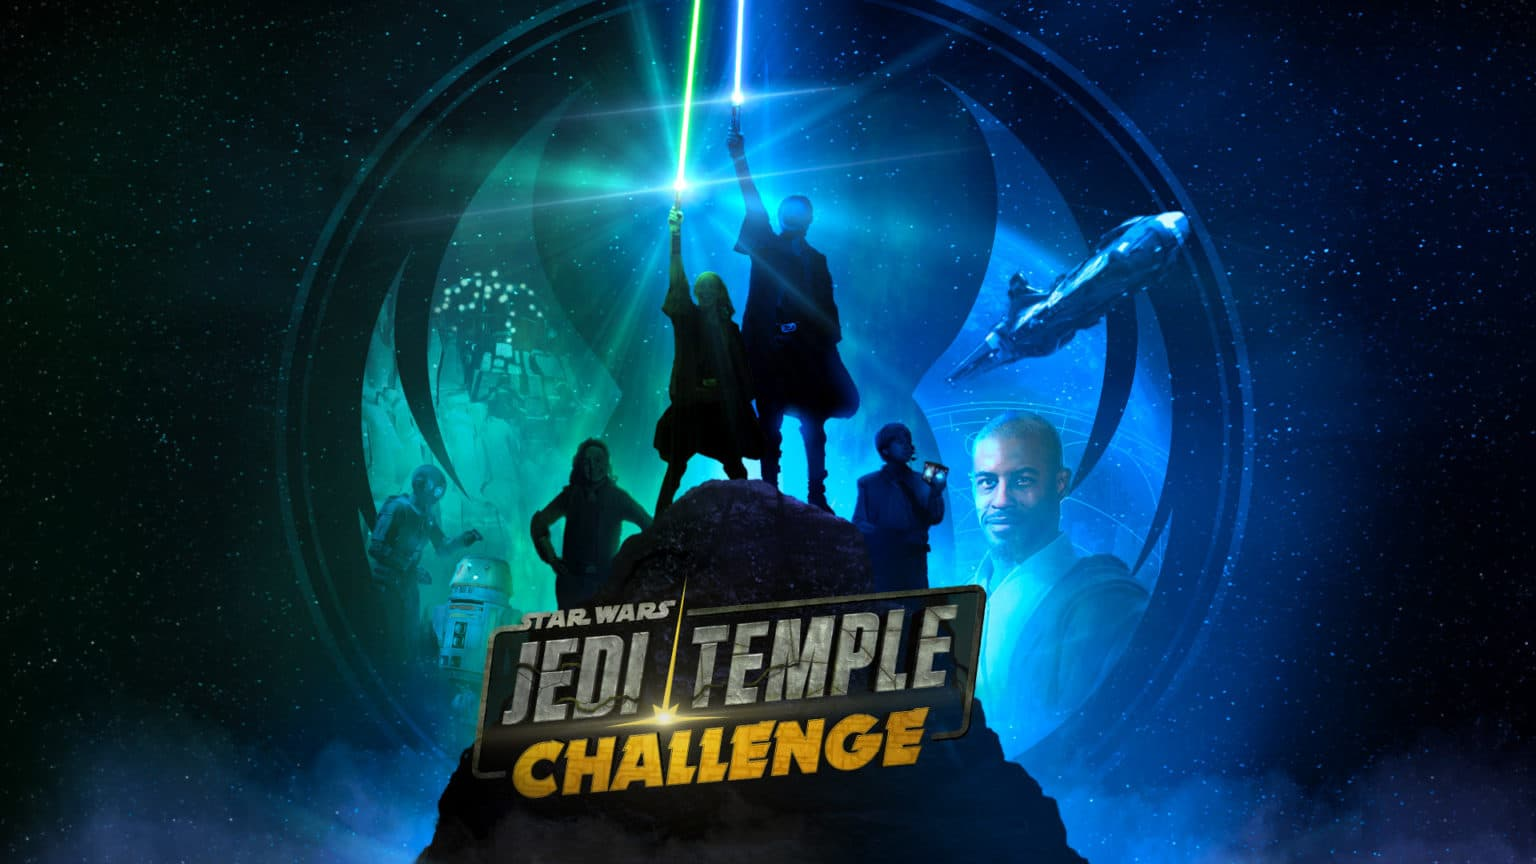 Official Jedi Temple Challenge promo art with ahmed best as a jedi master